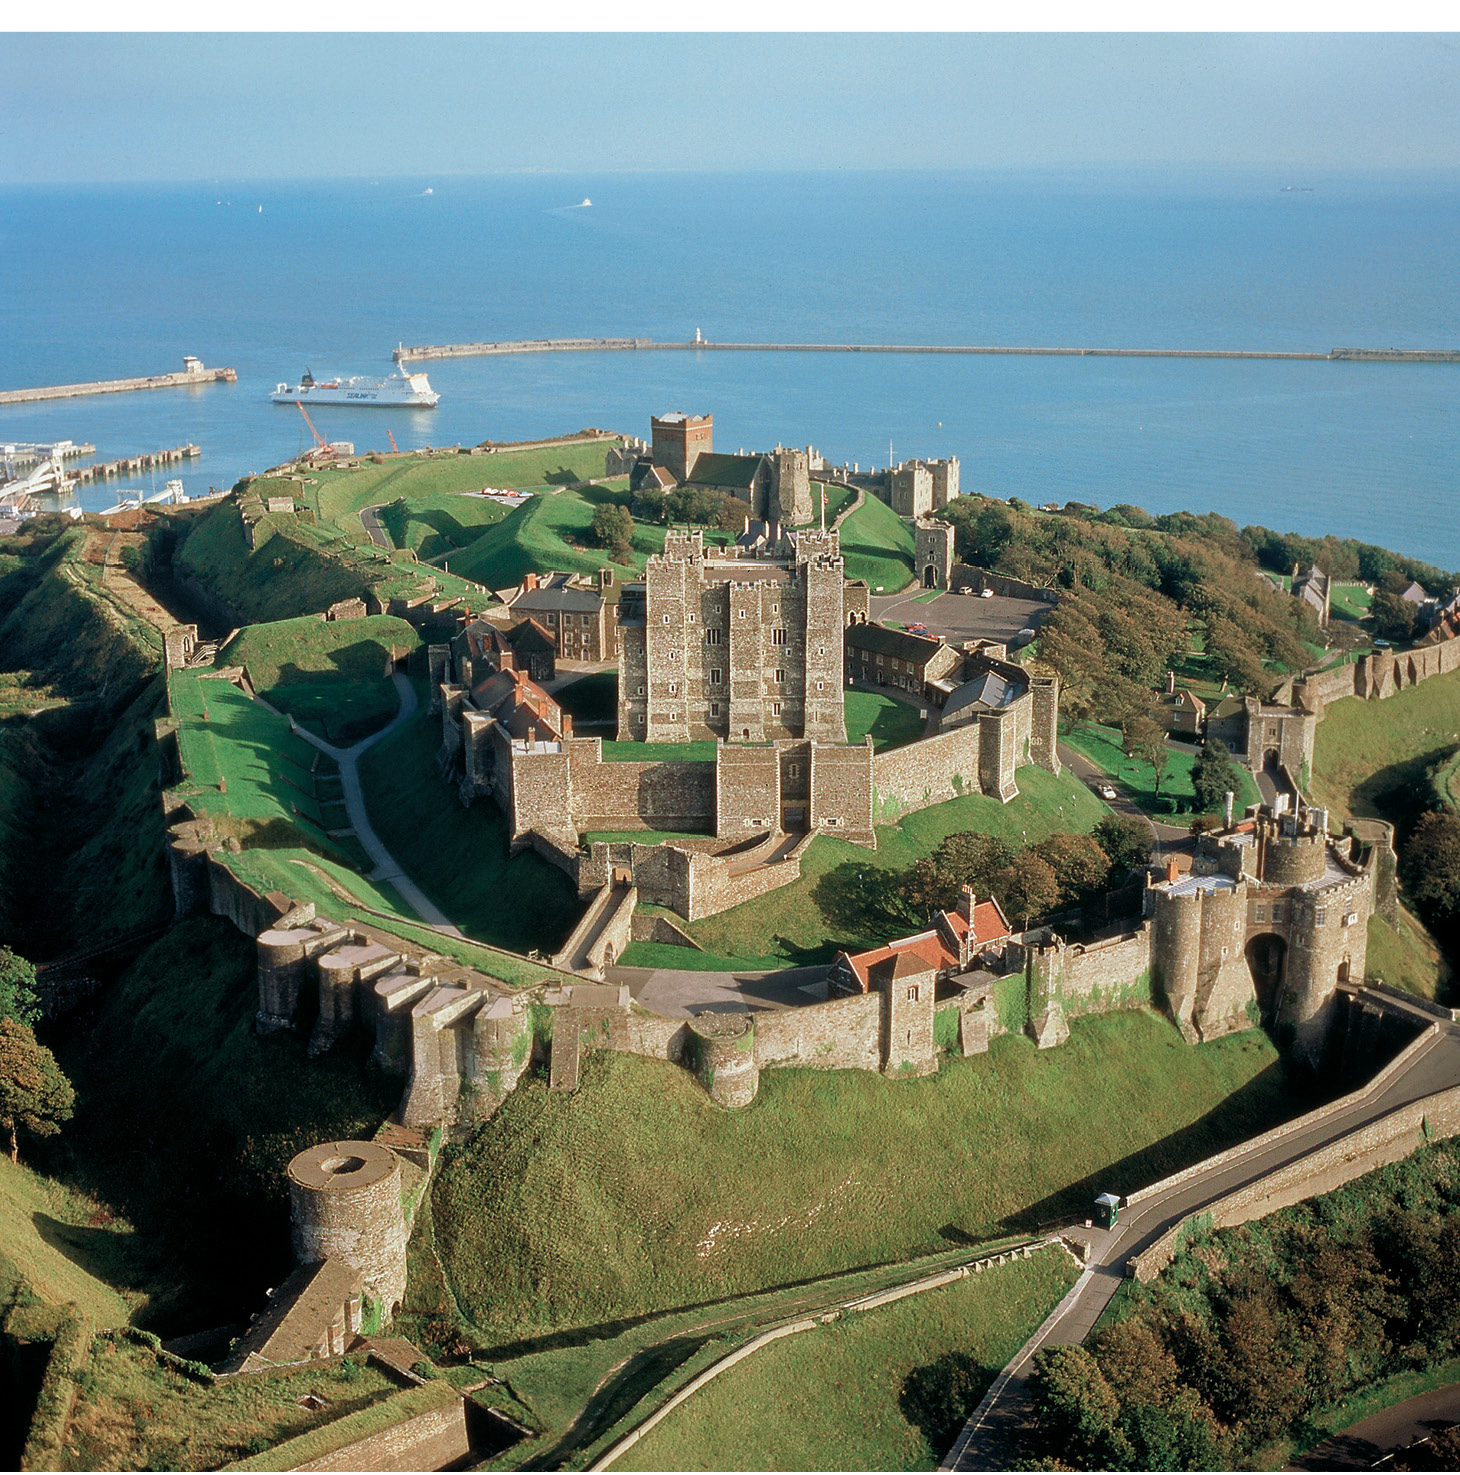 above Dover Castle is an example of colonising the past to stress the continuity of lordship: the clifftop castle incorporates the earthworks of an Iron Age hillfort, a Roman lighthouse, and the Anglo-Saxon church of St Mary in Castro.